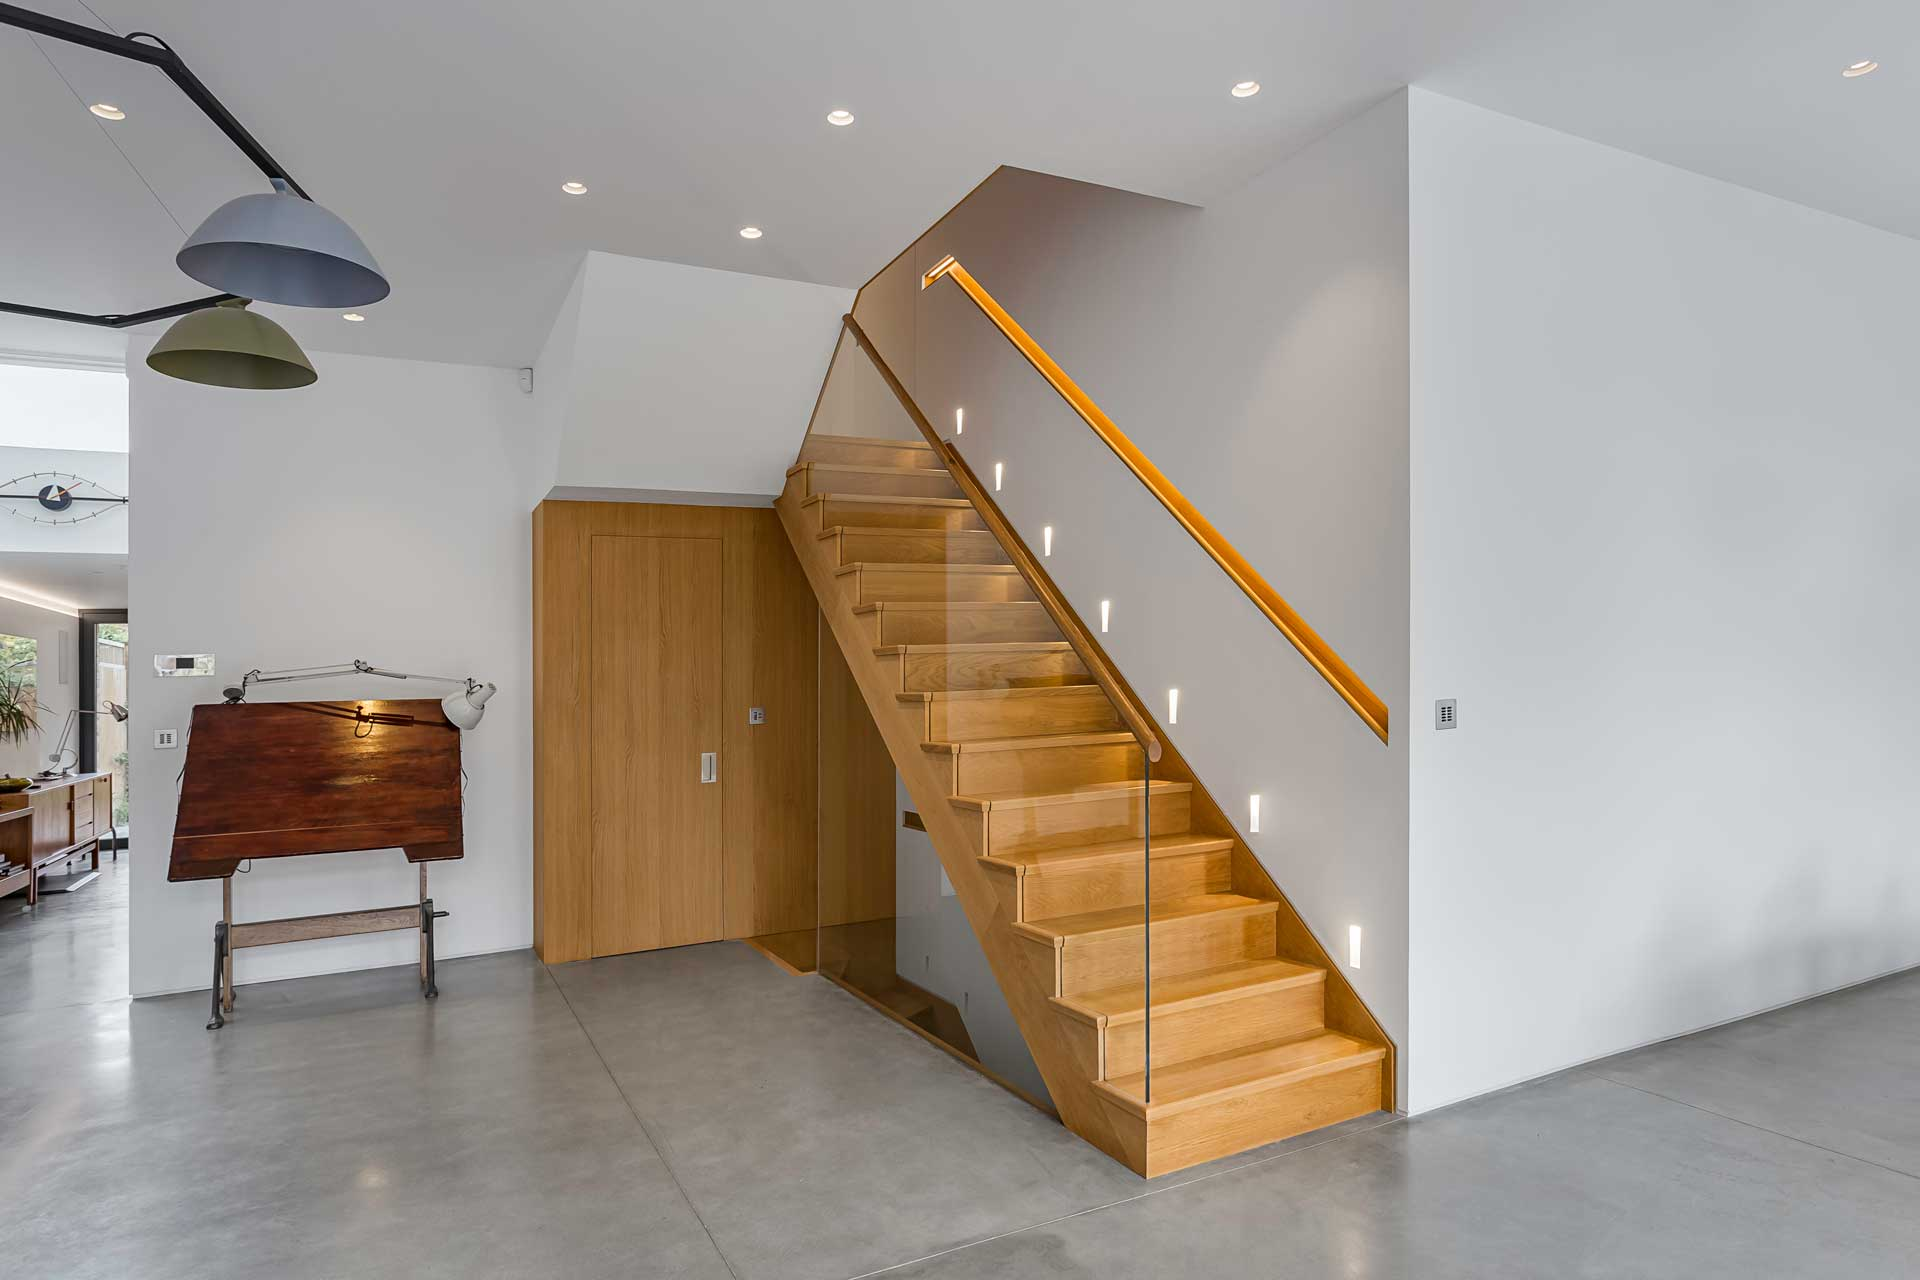 Helix Gardens Brixton Full Renovation And Extension With New Basement 10